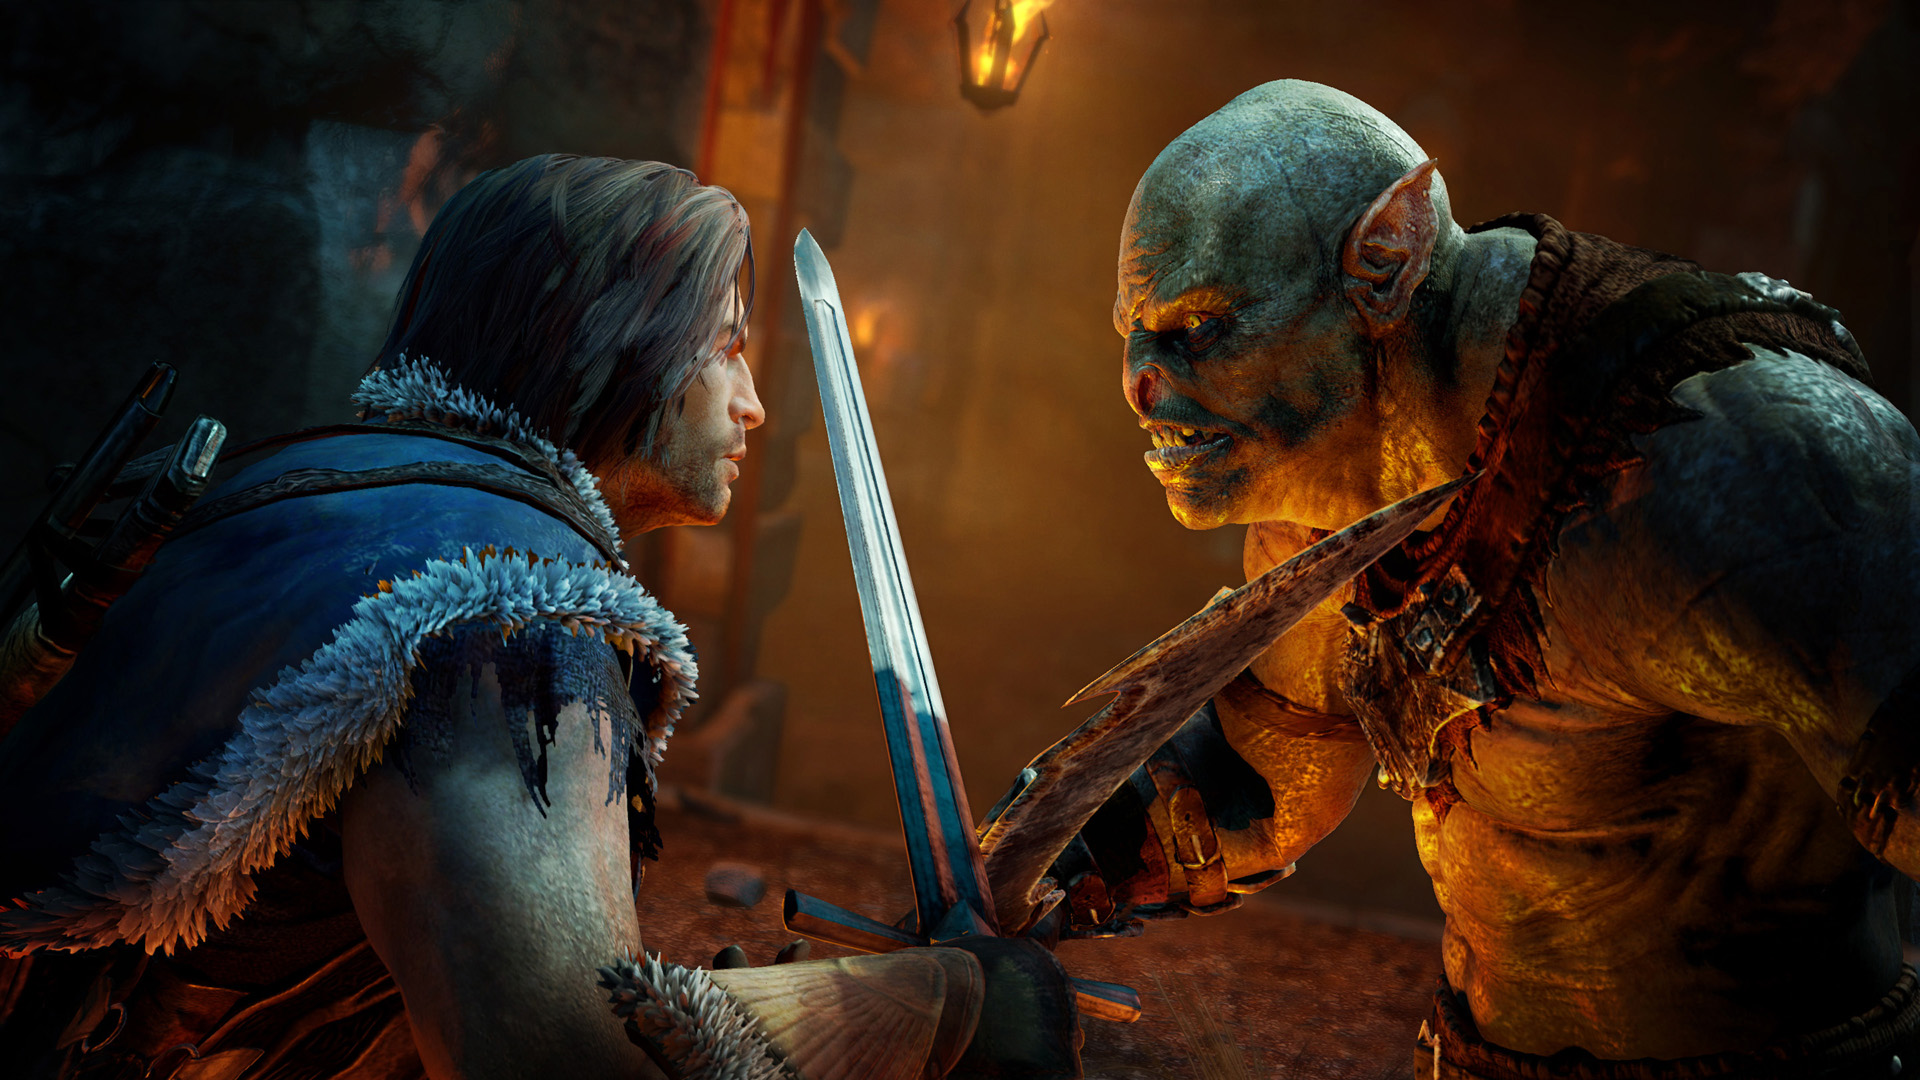 Middle-Earth: Shadow of Mordor nos presenta sus armas y runas [Vídeo]